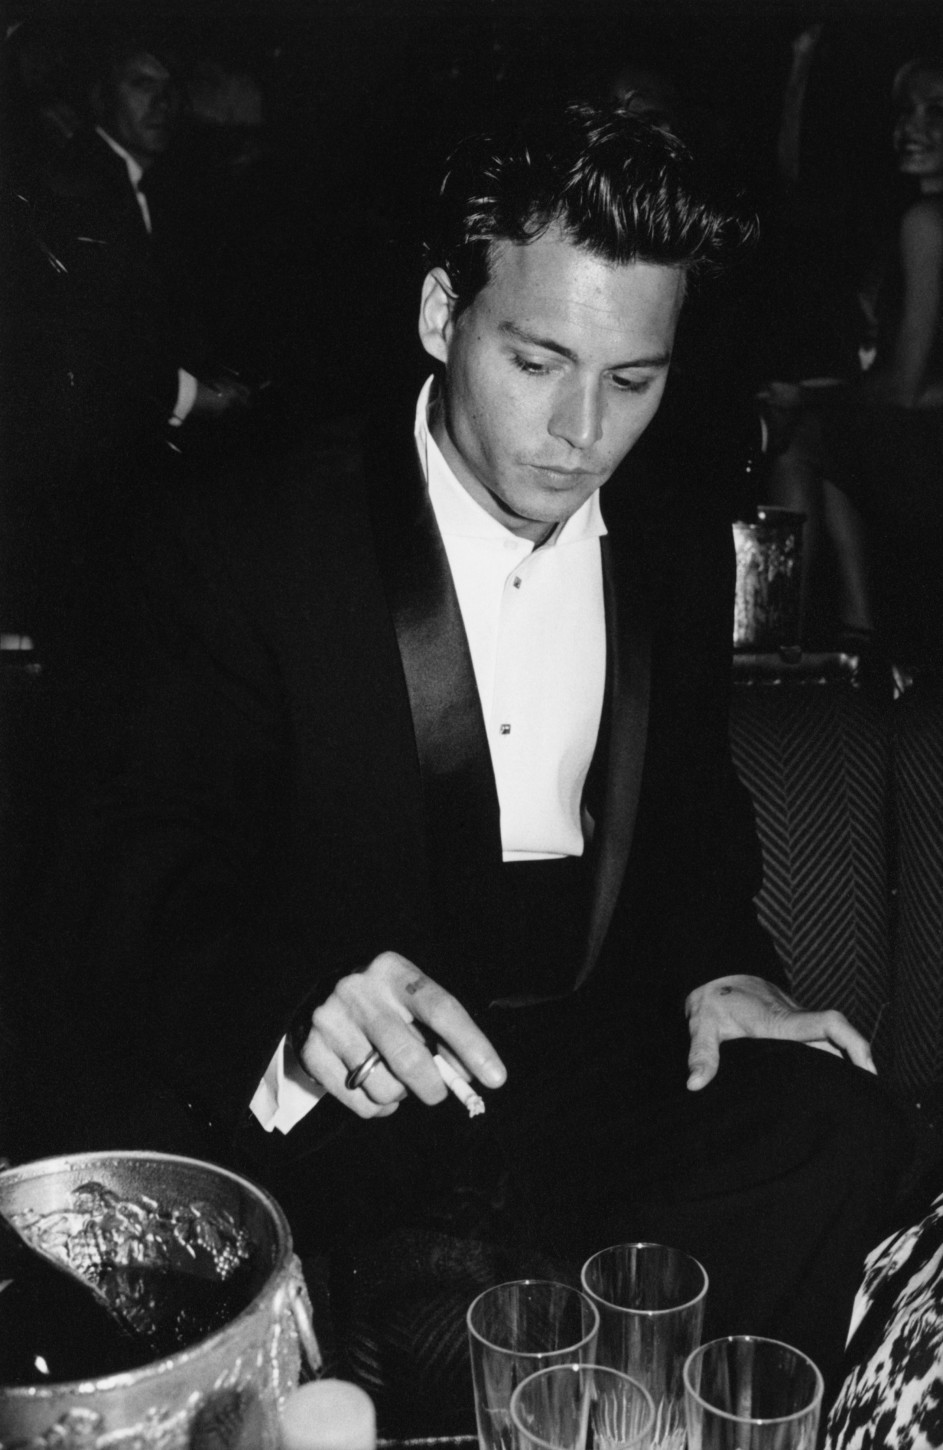 American actor Johnny Depp attends a party for the film 'Ed Wood', in which he plays the lead, at the Cannes Film Festival, France, May 1995. (Photo by Richard Blanshard/Getty Images)